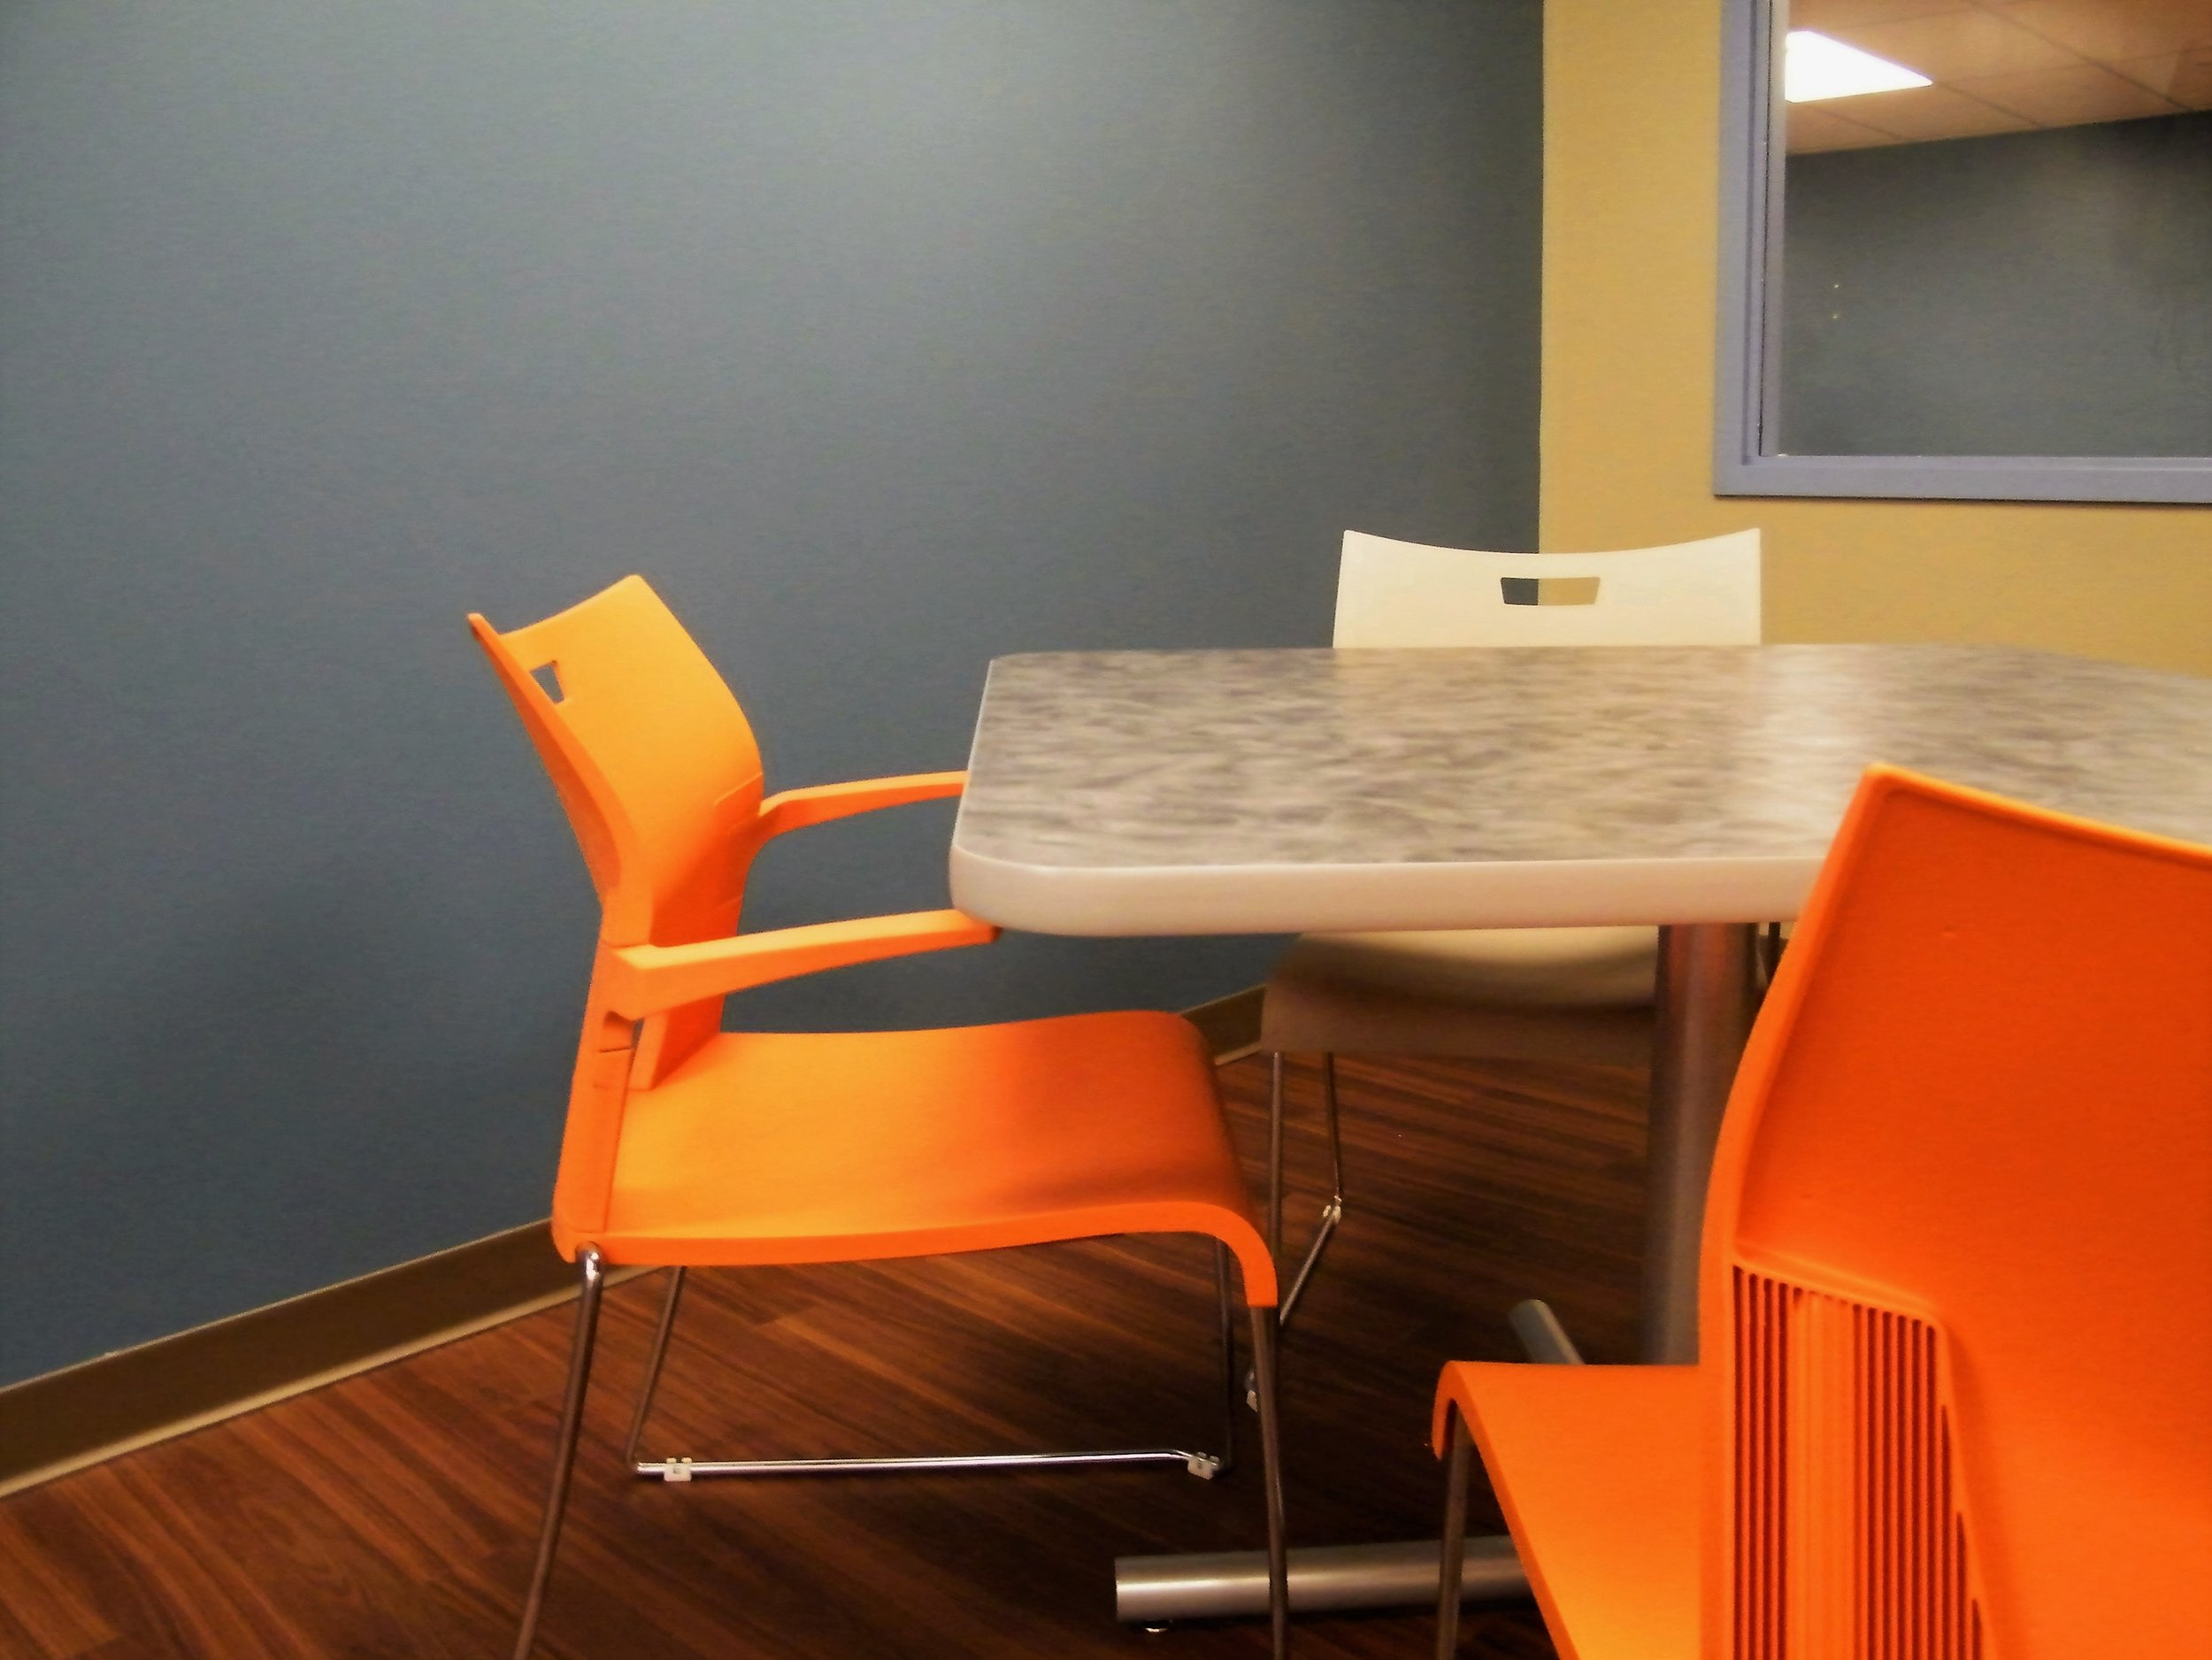 PVC Table with Laminate Top on Cross Base with Duet Chairs with Arms and Without Arms in Orange and Grey